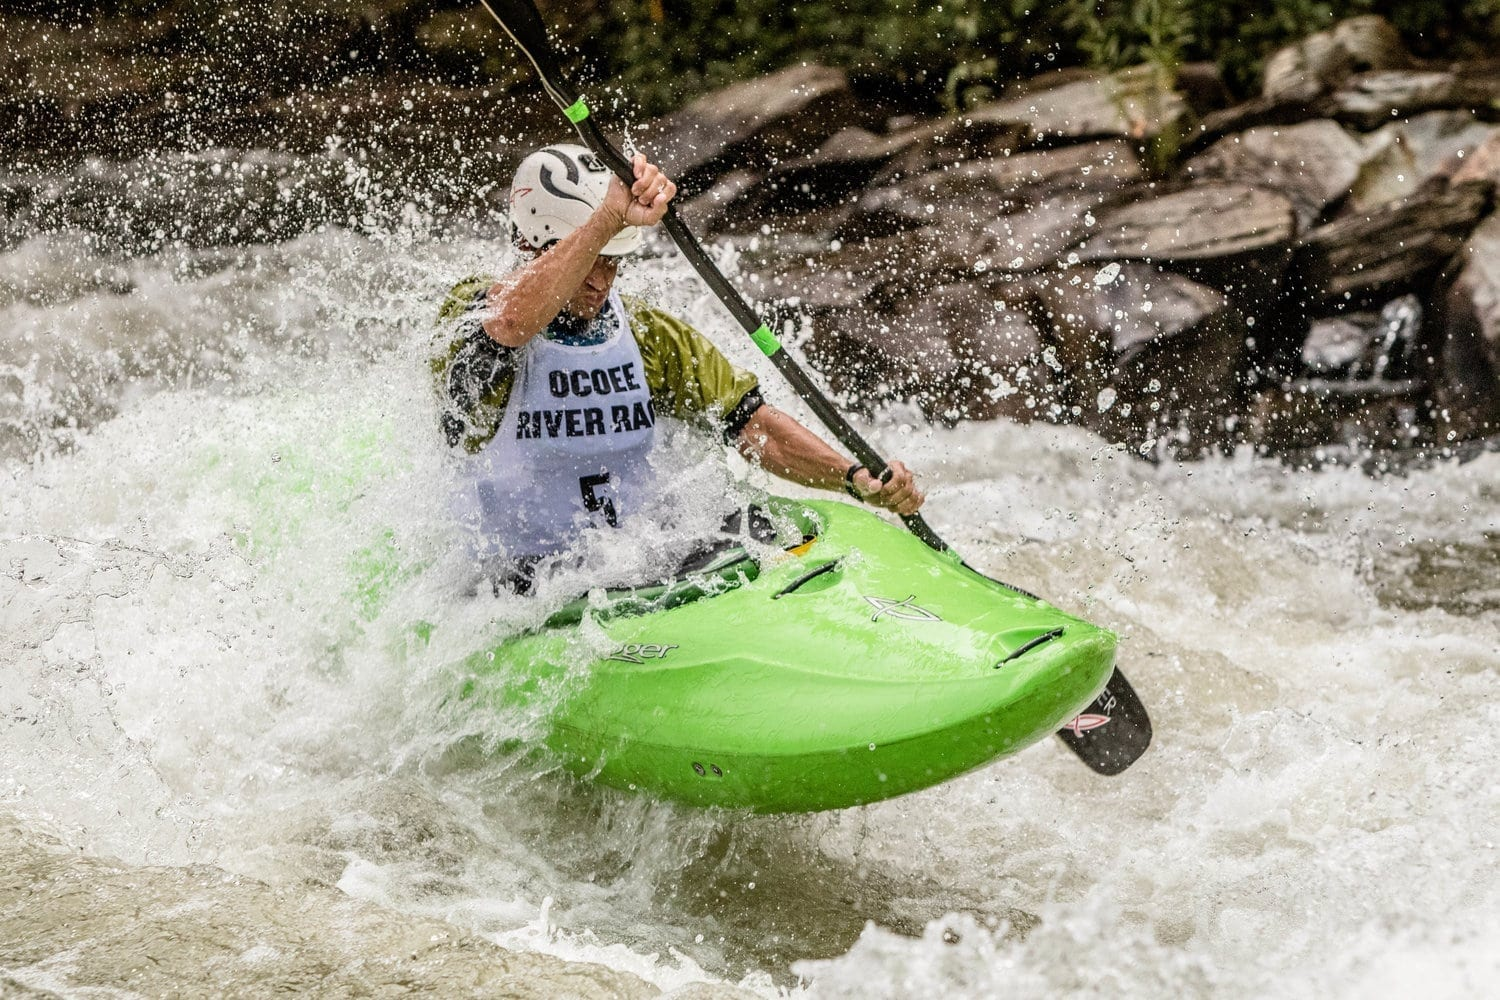 Man paddles a kayak in the Ocoee River Championships